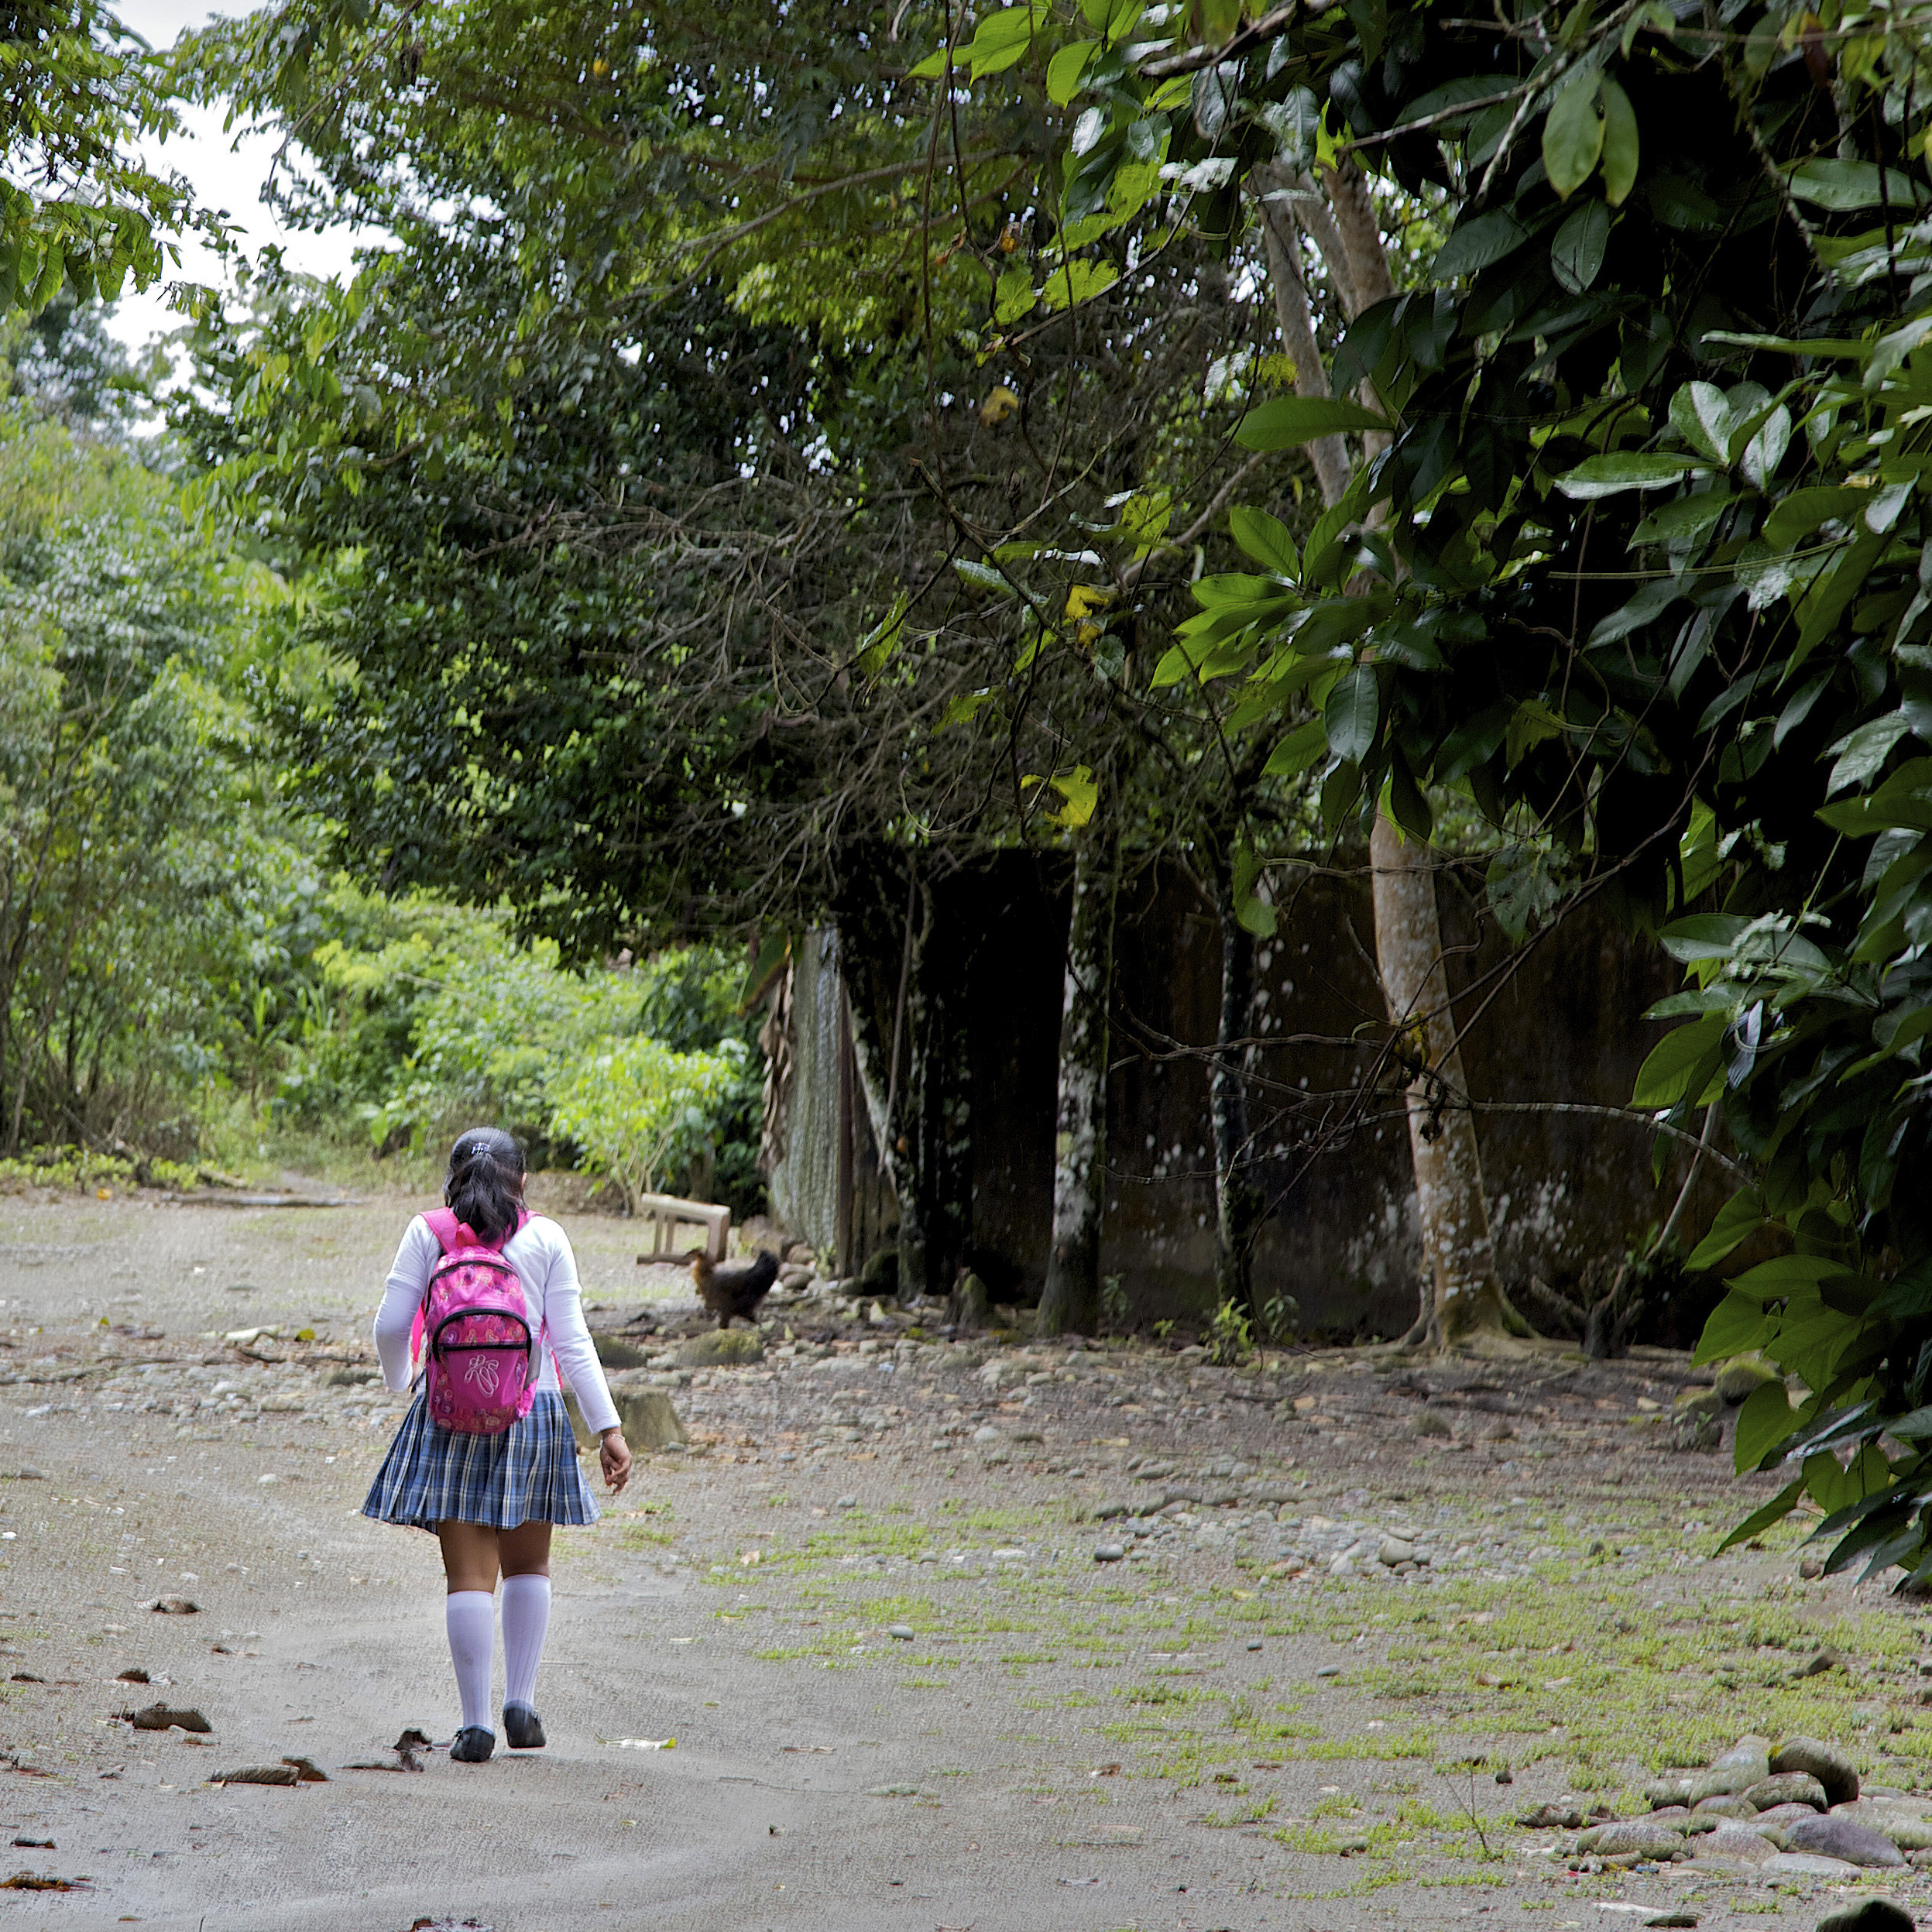 A schoolgirl walks home from school in El Pacer, Colombia. Paramilitary forces allied with the Colombian government against Marxist FARC guerrillas took over El Pacer in 1999 and controlled it through violence, including widespread rape.